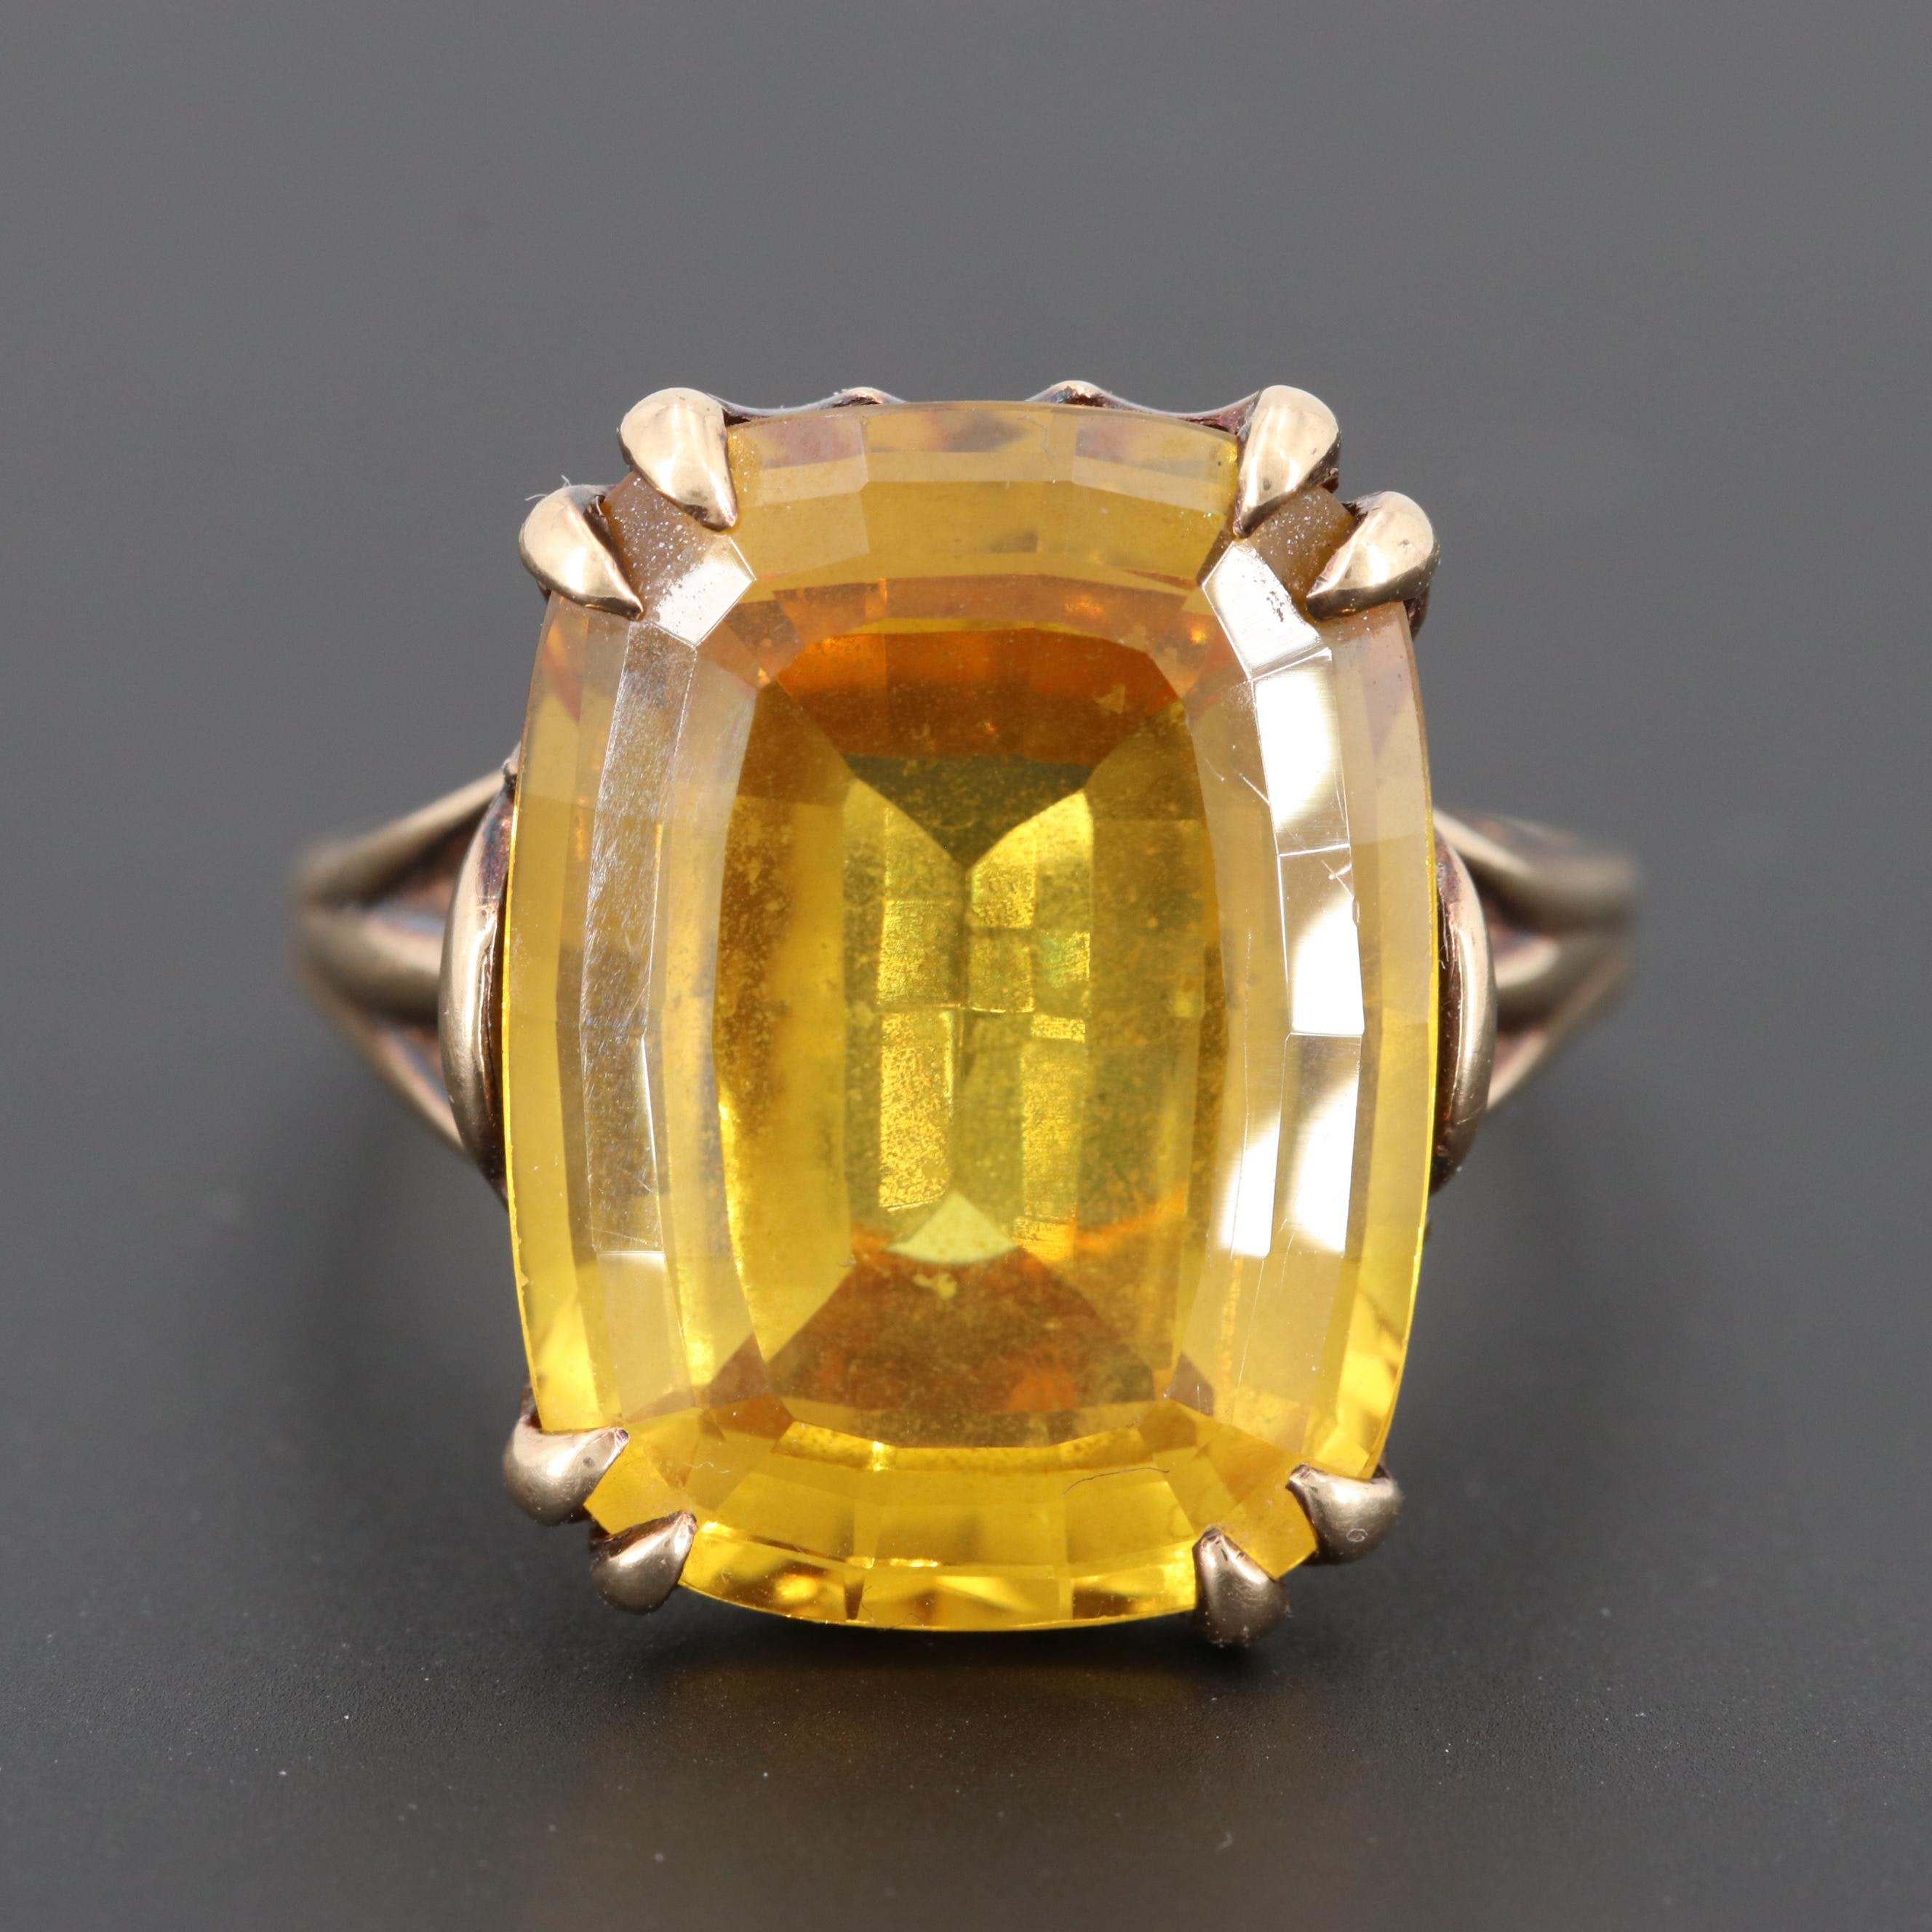 Vintage 10K Yellow Gold 15.97 CT Citrine Ring